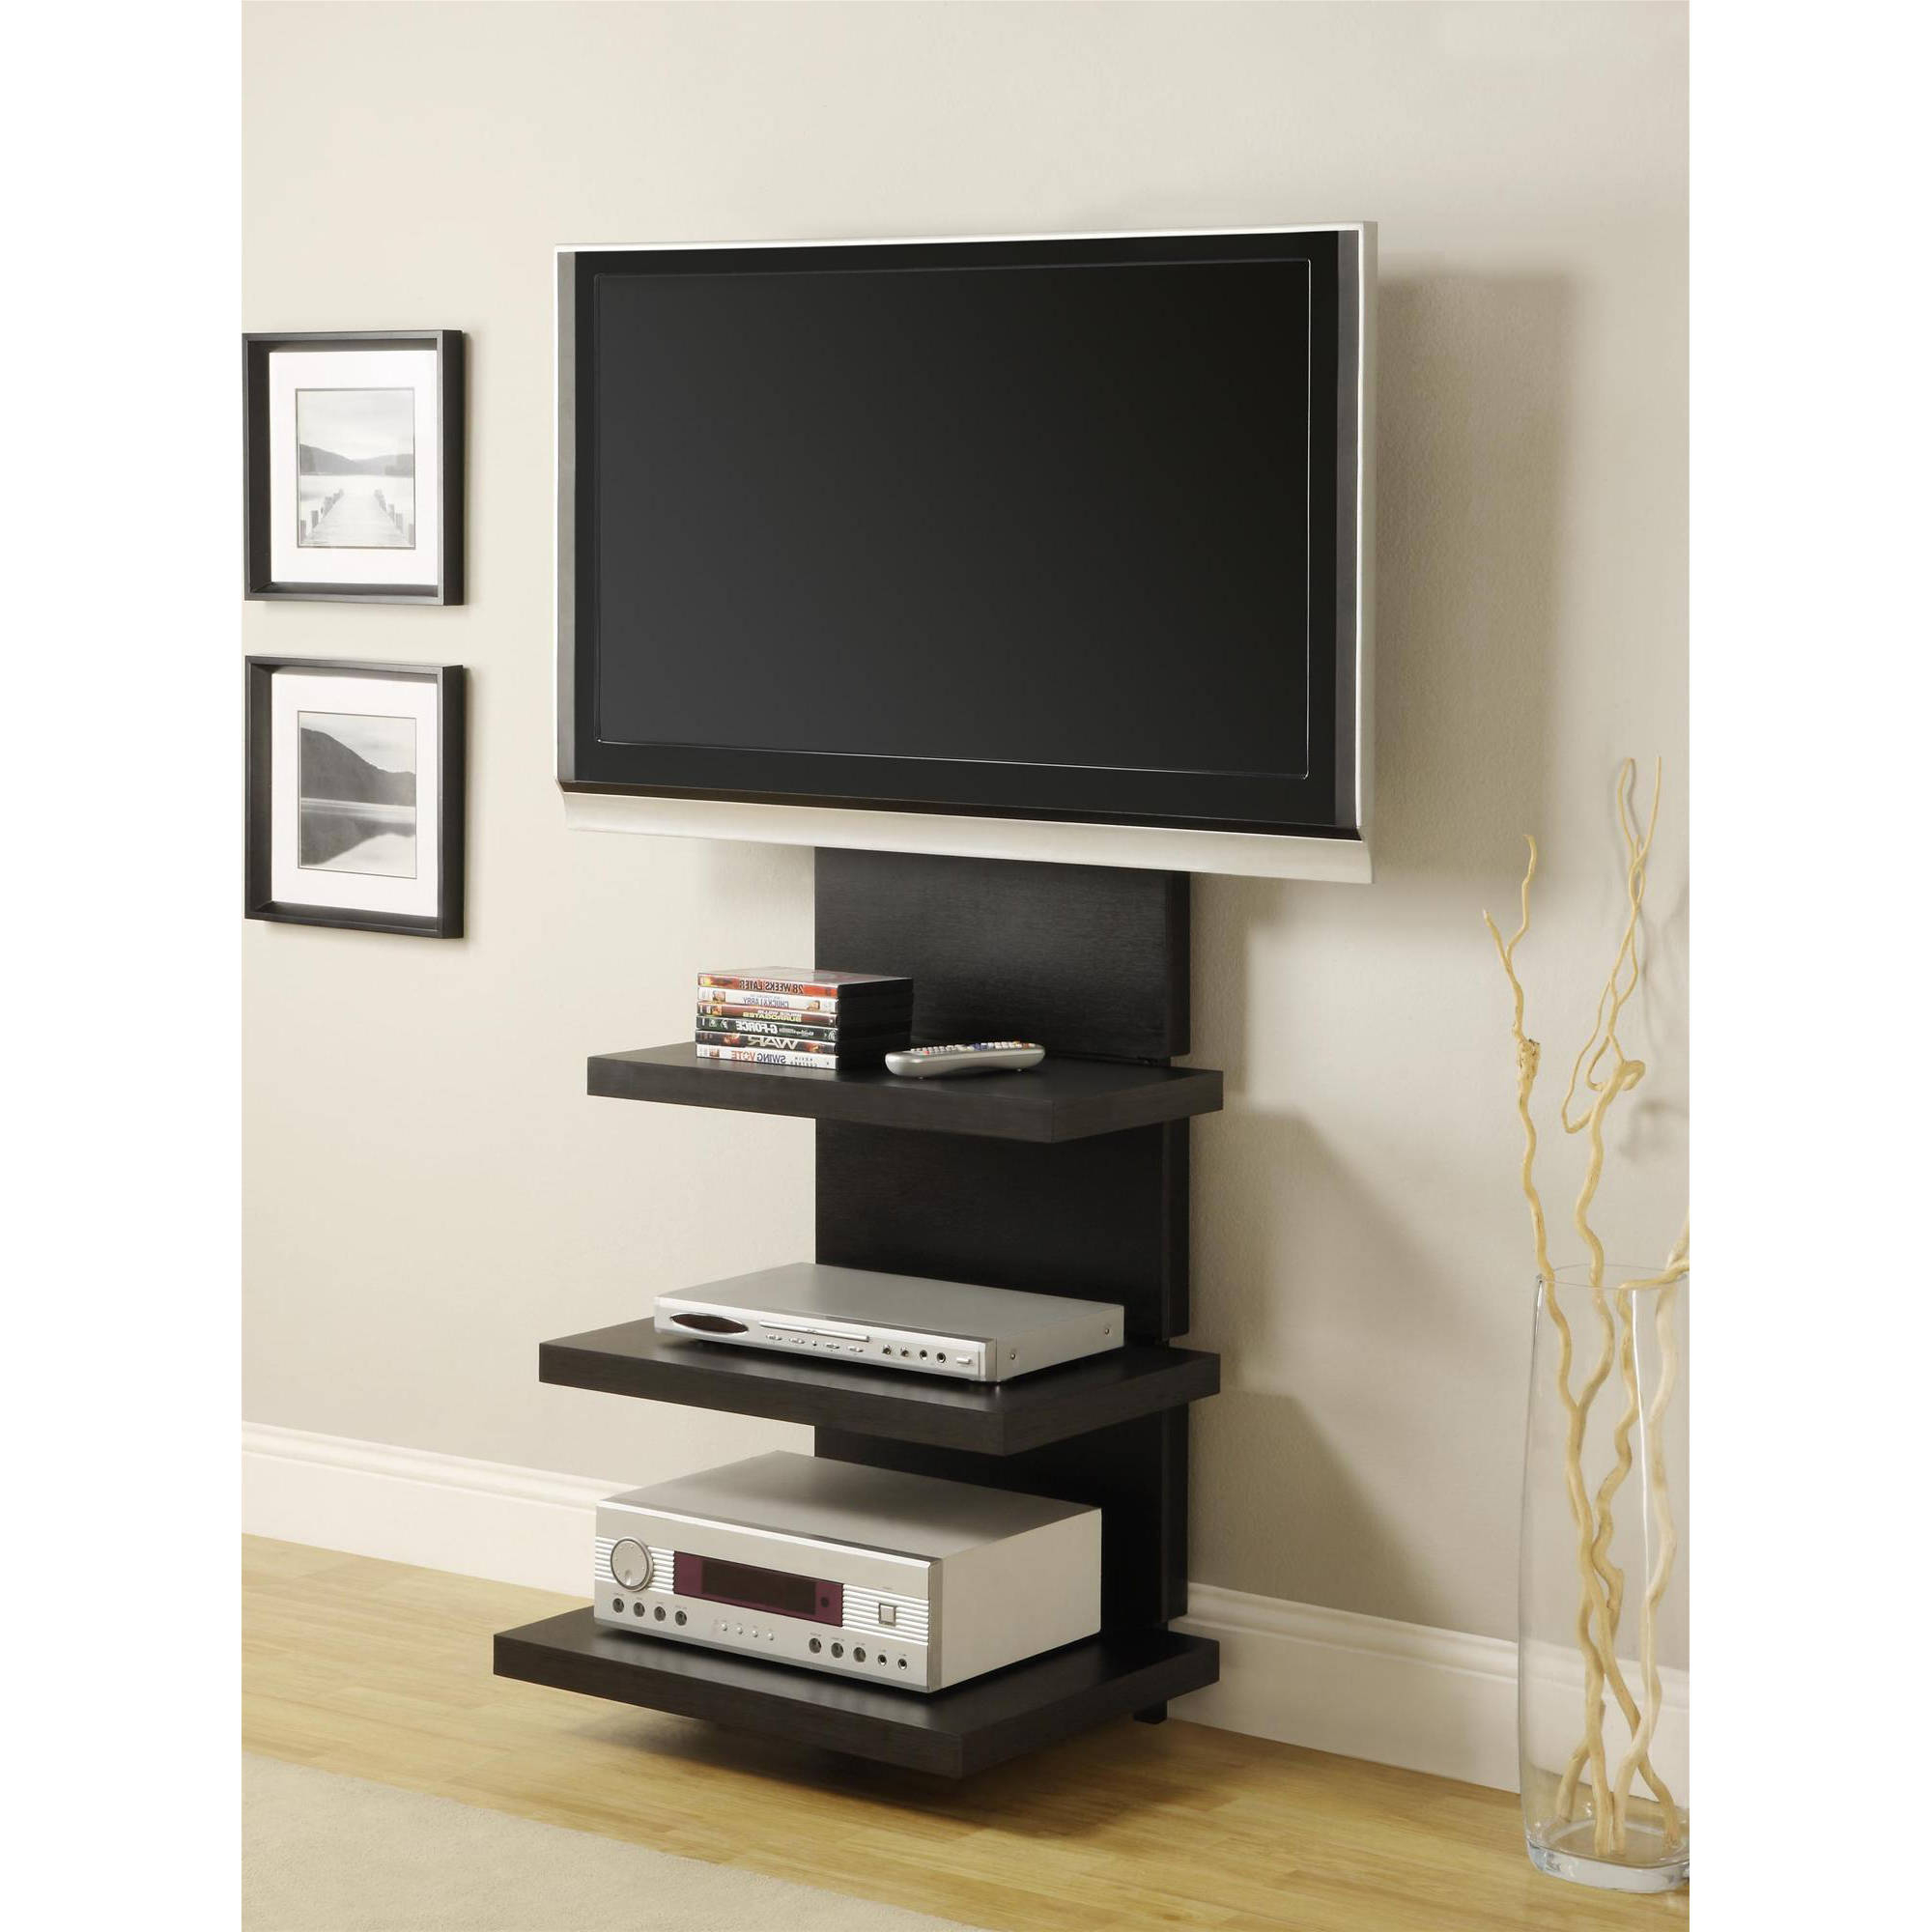 "Modern Wall Mount Tv Stands Throughout 2017 Ameriwood Home Elevation Altramount Tv Stand For Tvs Up To 60"" Wide (View 8 of 20)"